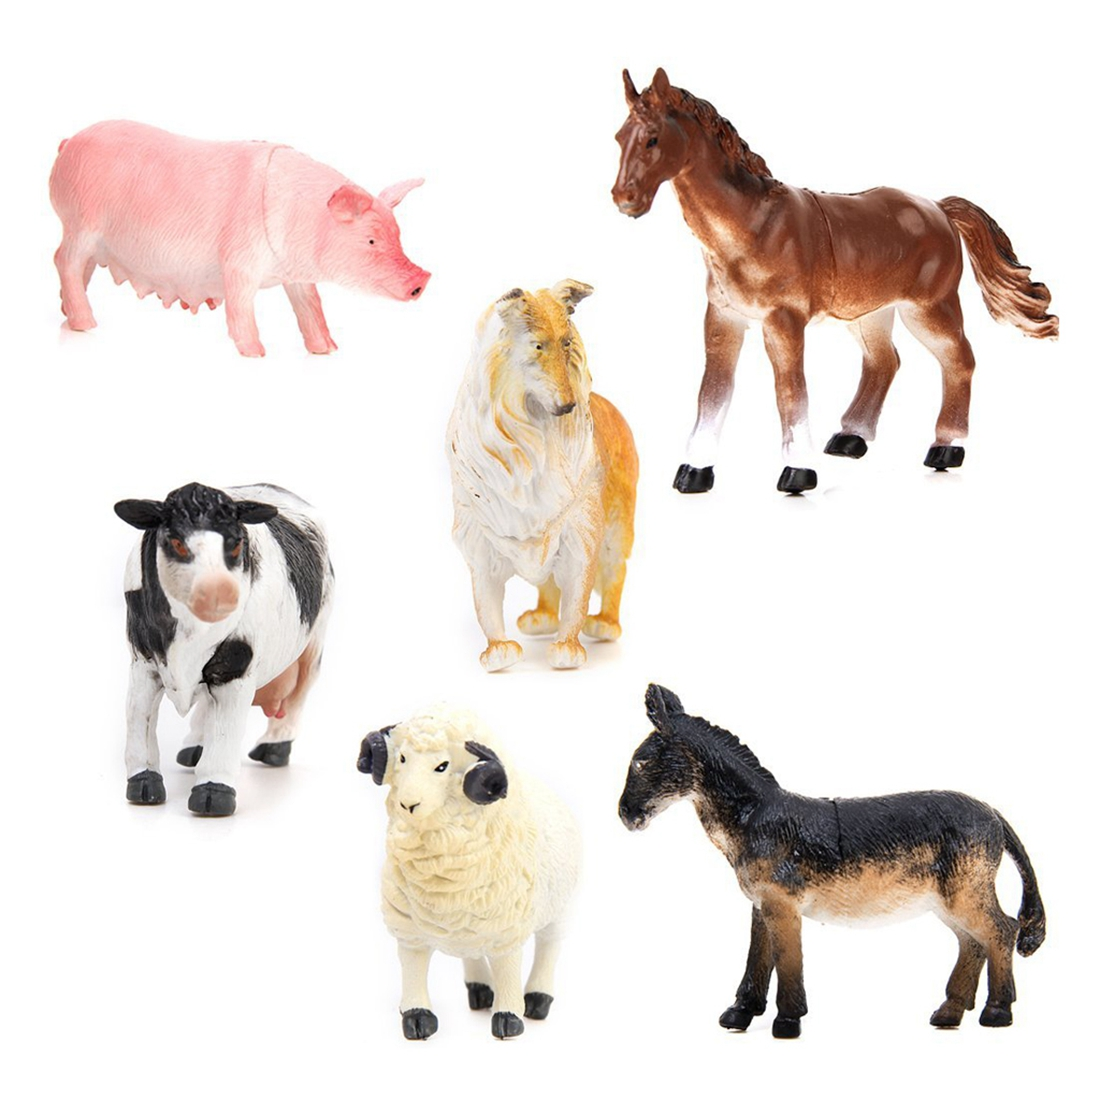 ABWE Best Sale Kids Toy 6 pcs Farm Animal Model Set Pig Dog Cow Sheep Horse Donkey 6pcs simulated farm animal horse sheep